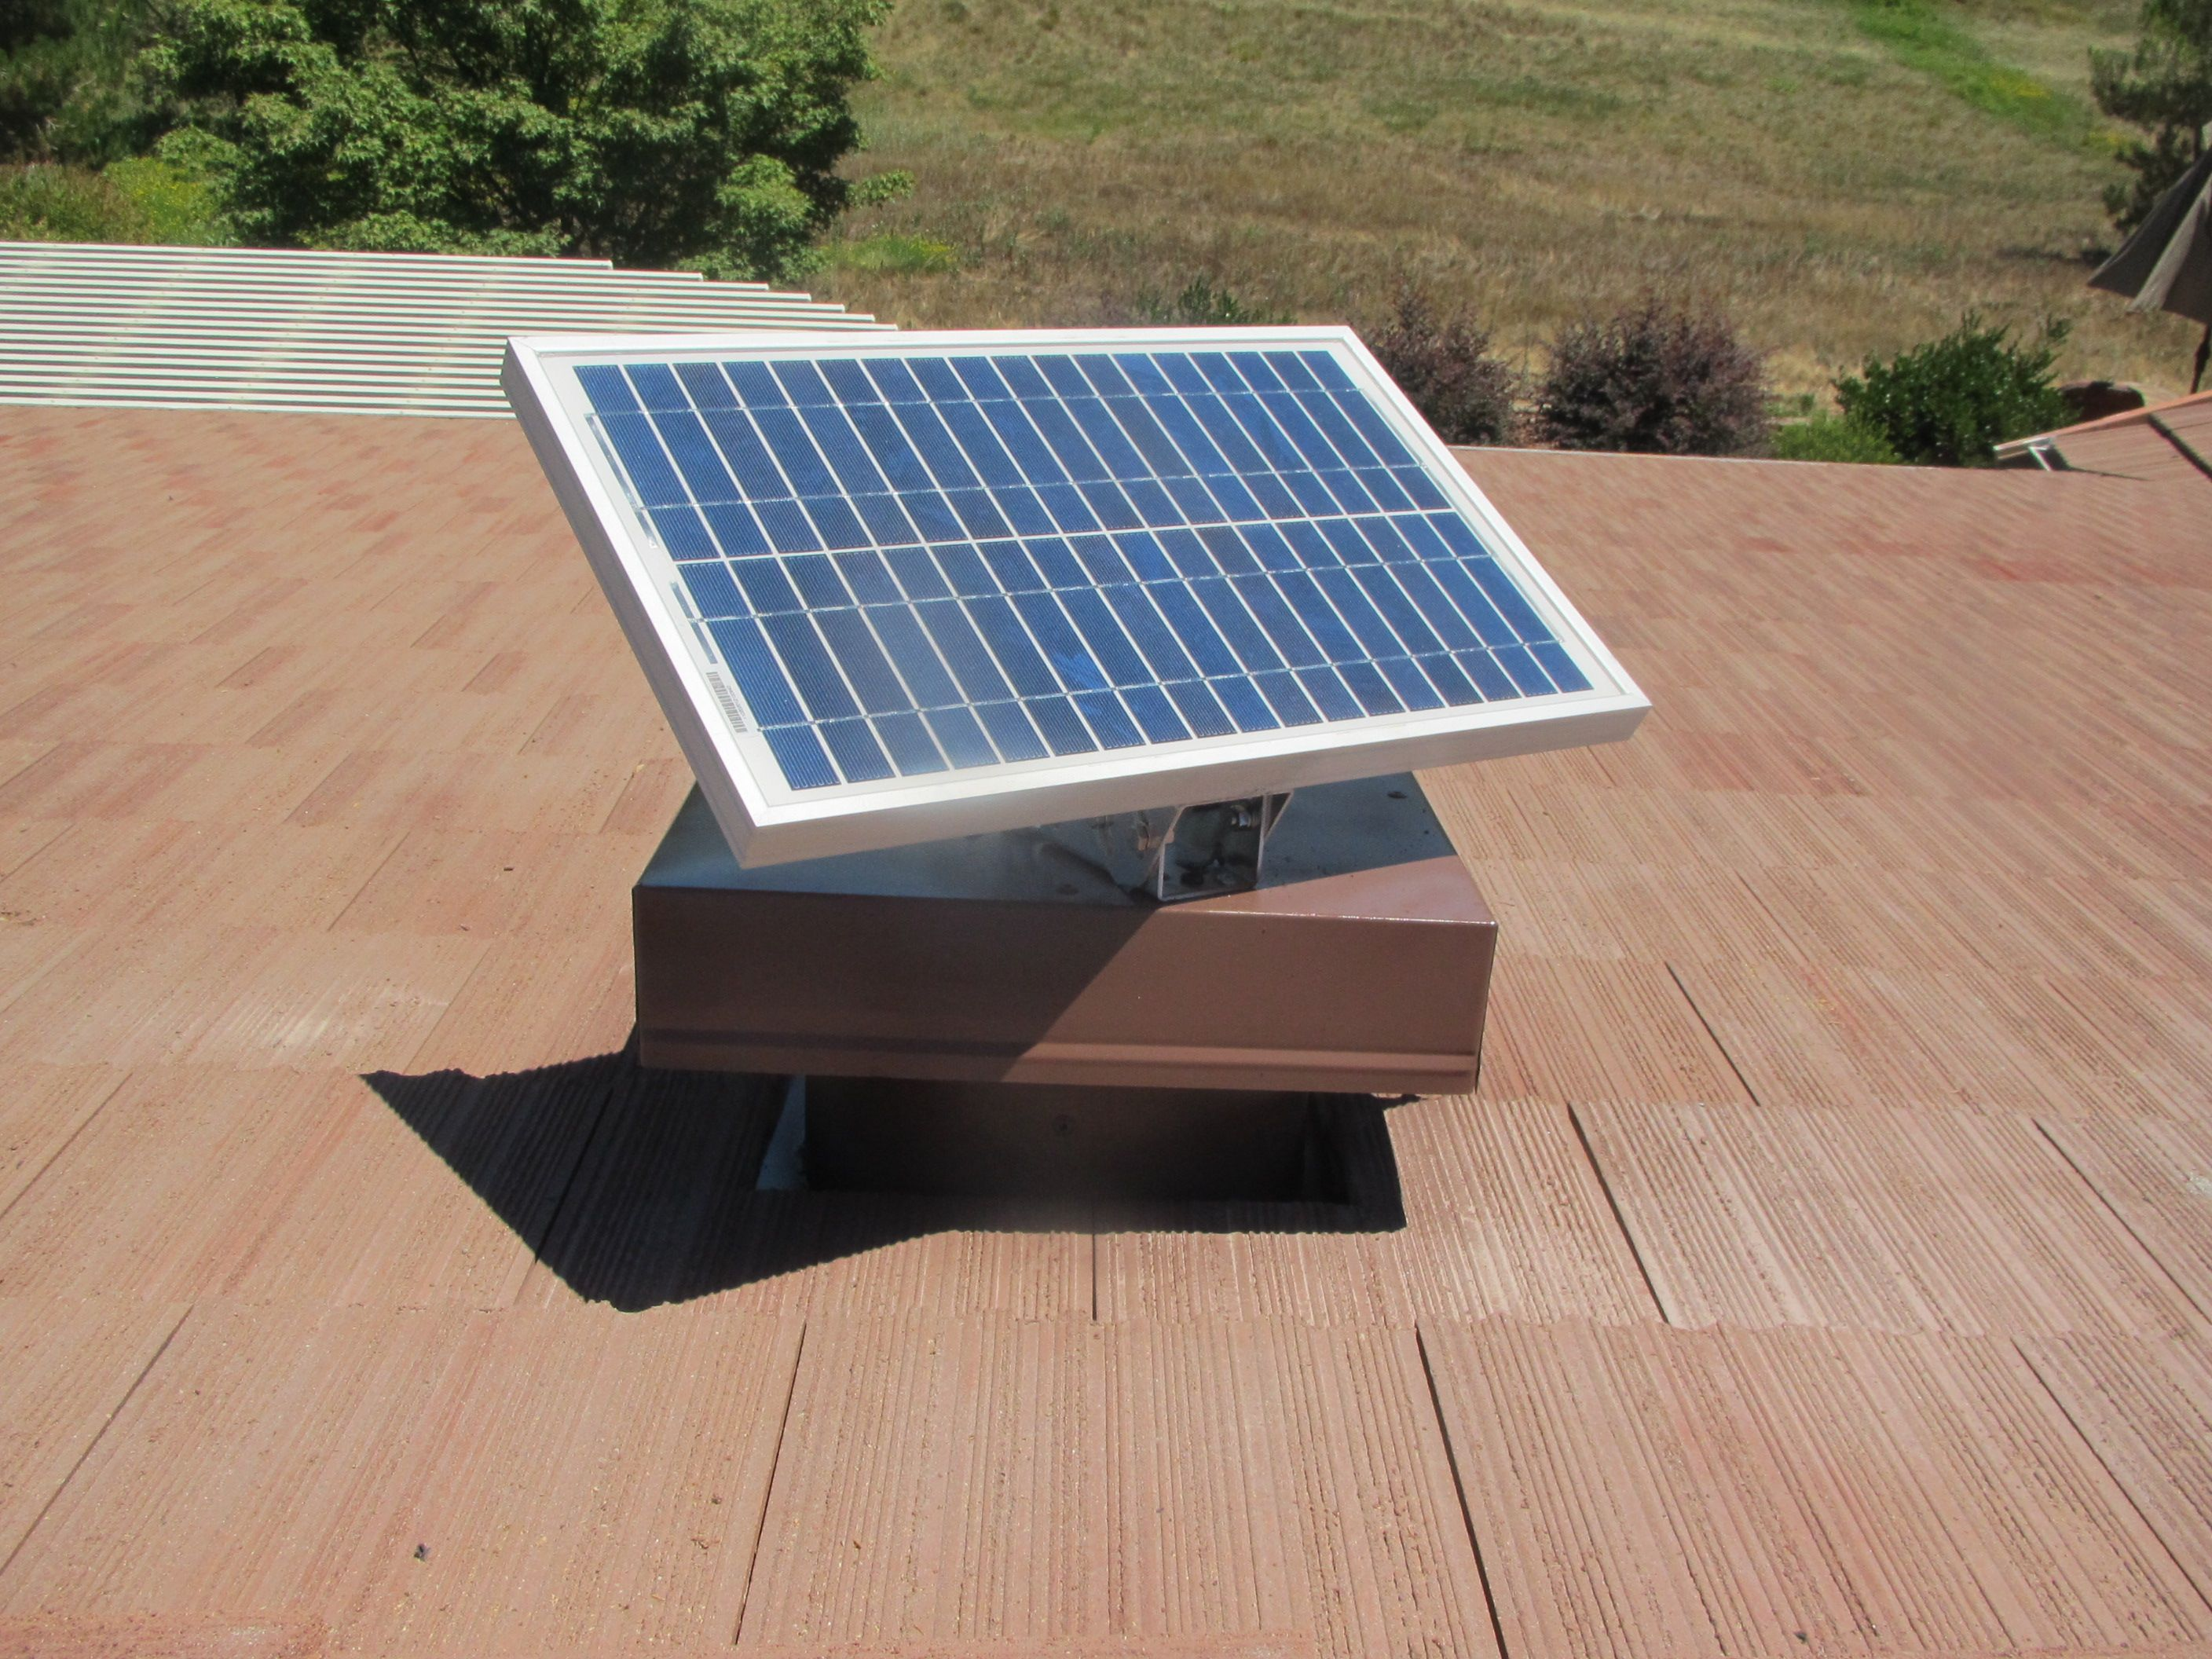 Here Is A 20 Watt Vortex Solar Fan Installed On A Tile Roof Solar Panel Is Fully Adjustable Allowing For Optimal Positi Solar Fan Solar Attic Fan Solar Panels